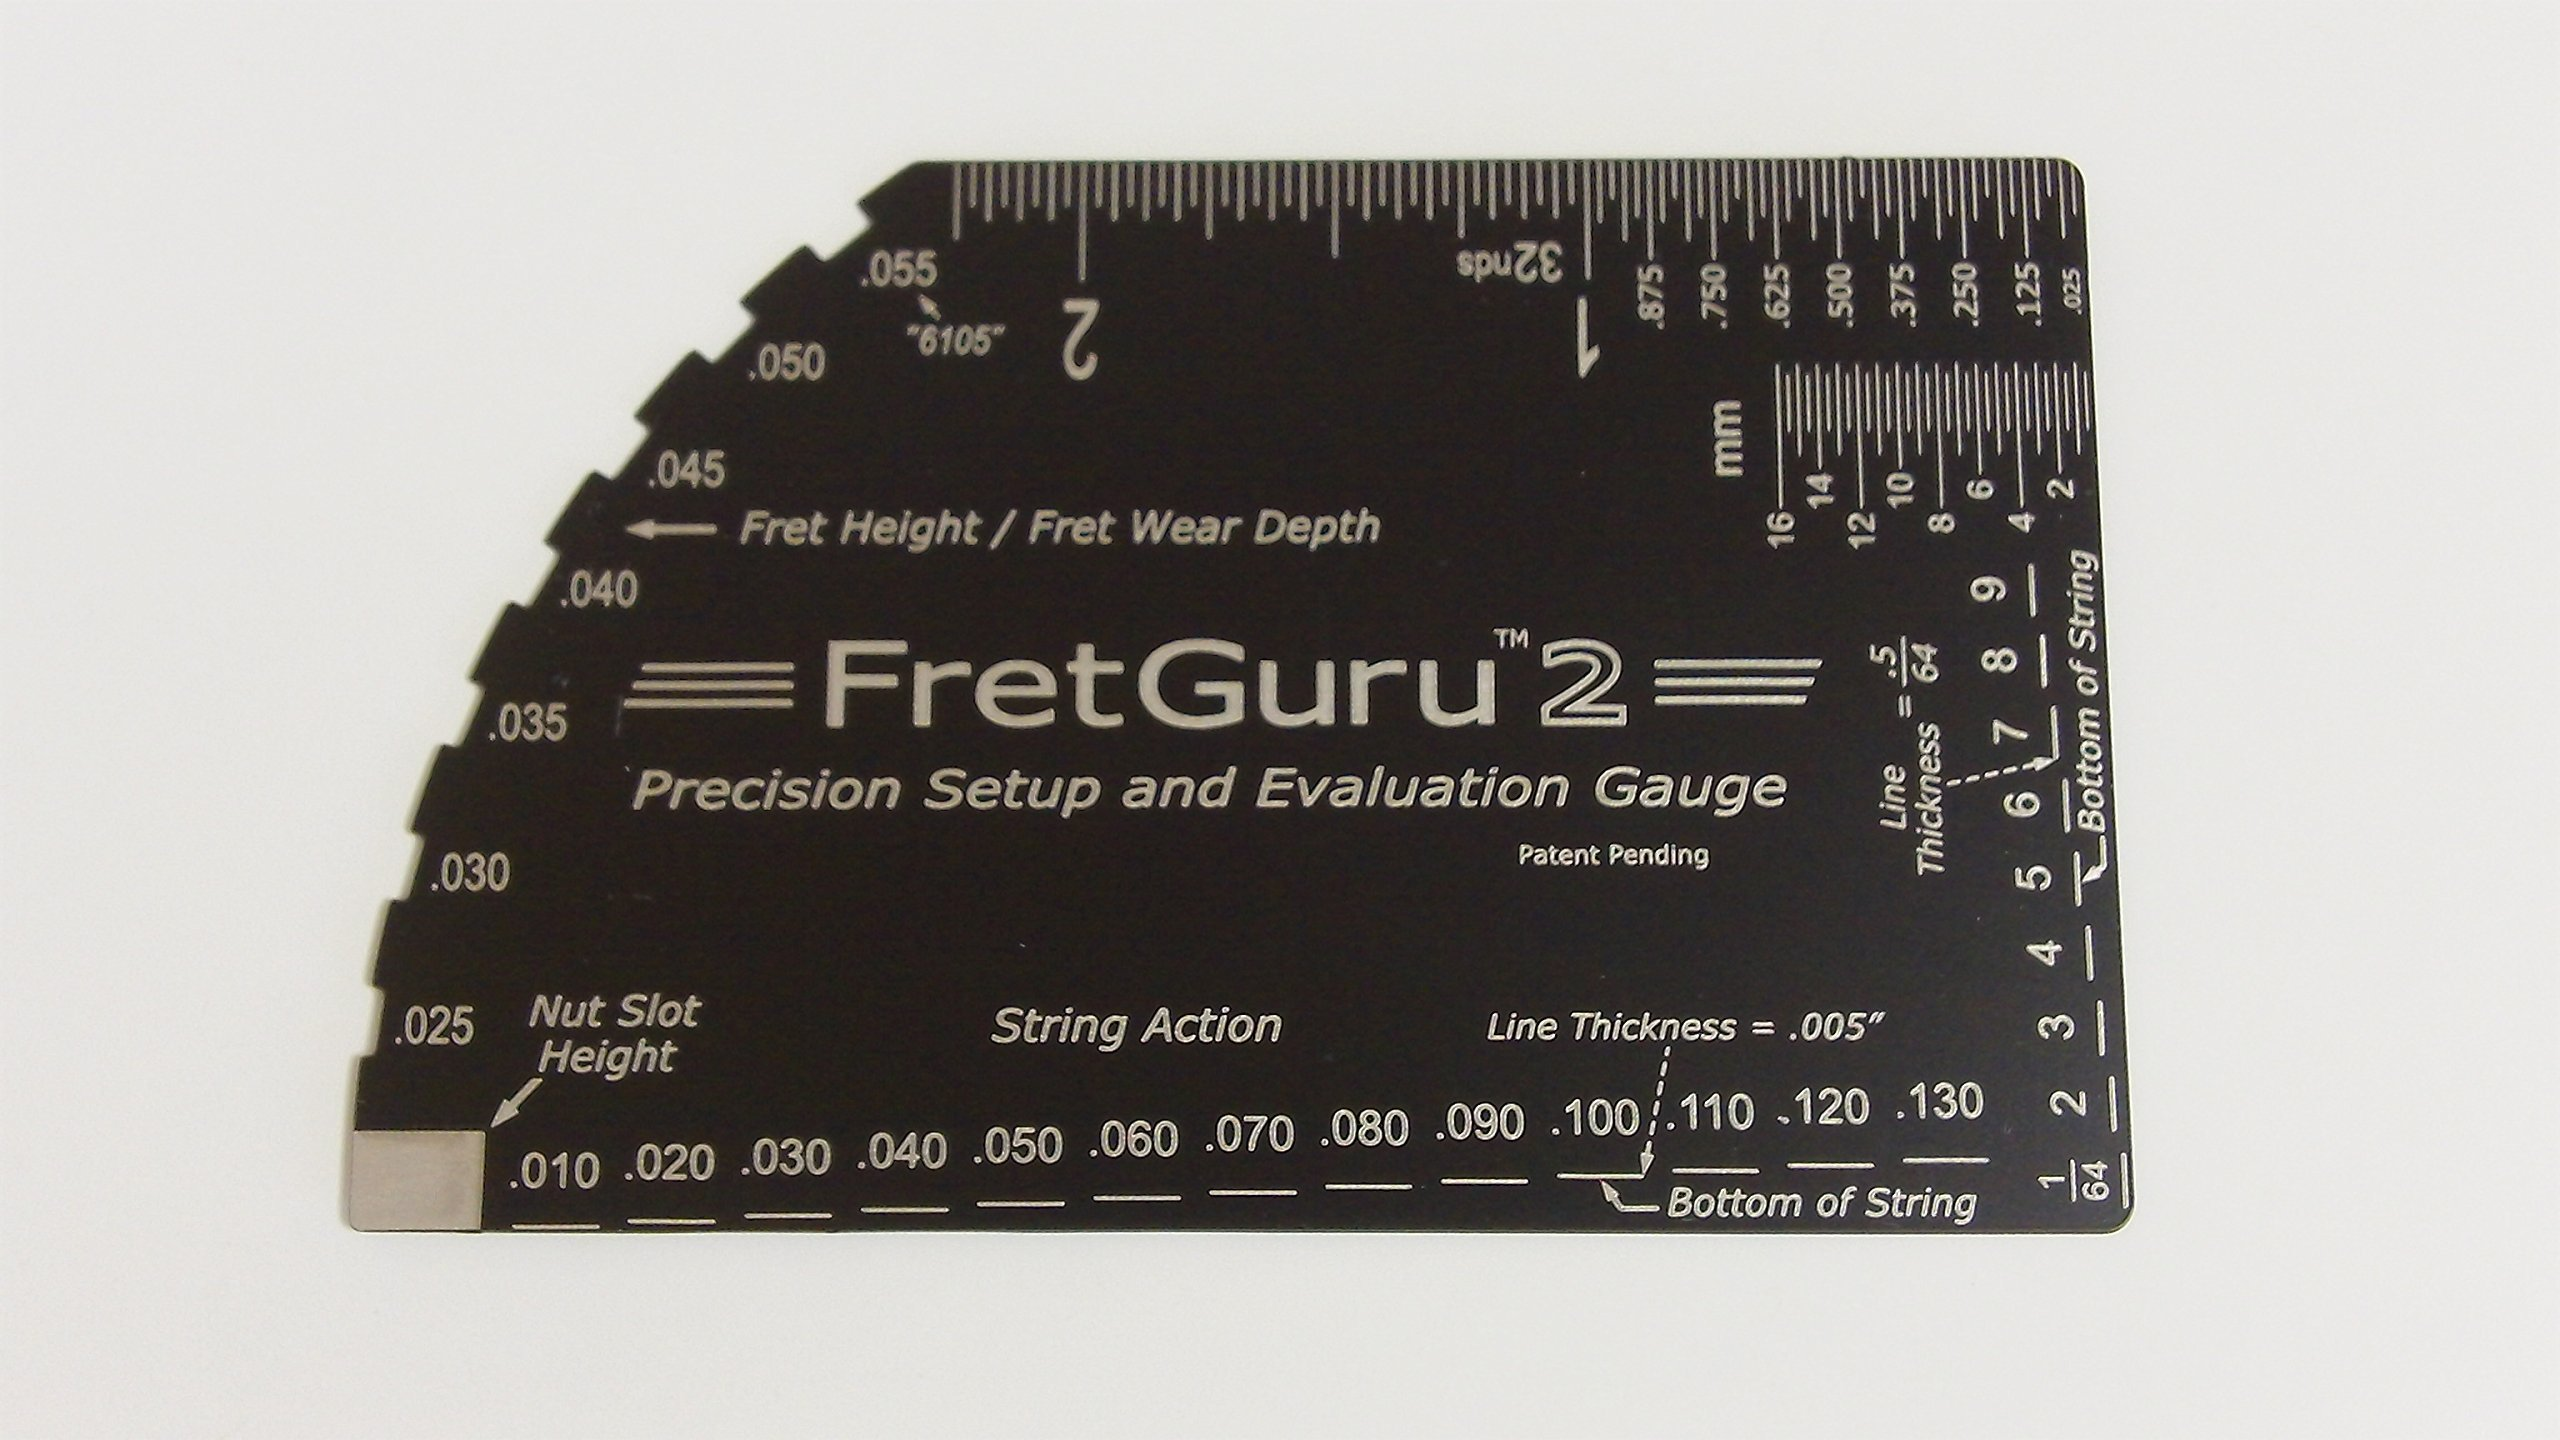 FretGuru 2 Precision 8-in-1 Guitar String Action Gauge Fret Rocker Ruler Luthier Tool guitarist gift #BONUS LEATHER CASE# Super Precise CNC Machined, Diamond Honed, Polished Edge = NO SCRATCHED FRETS